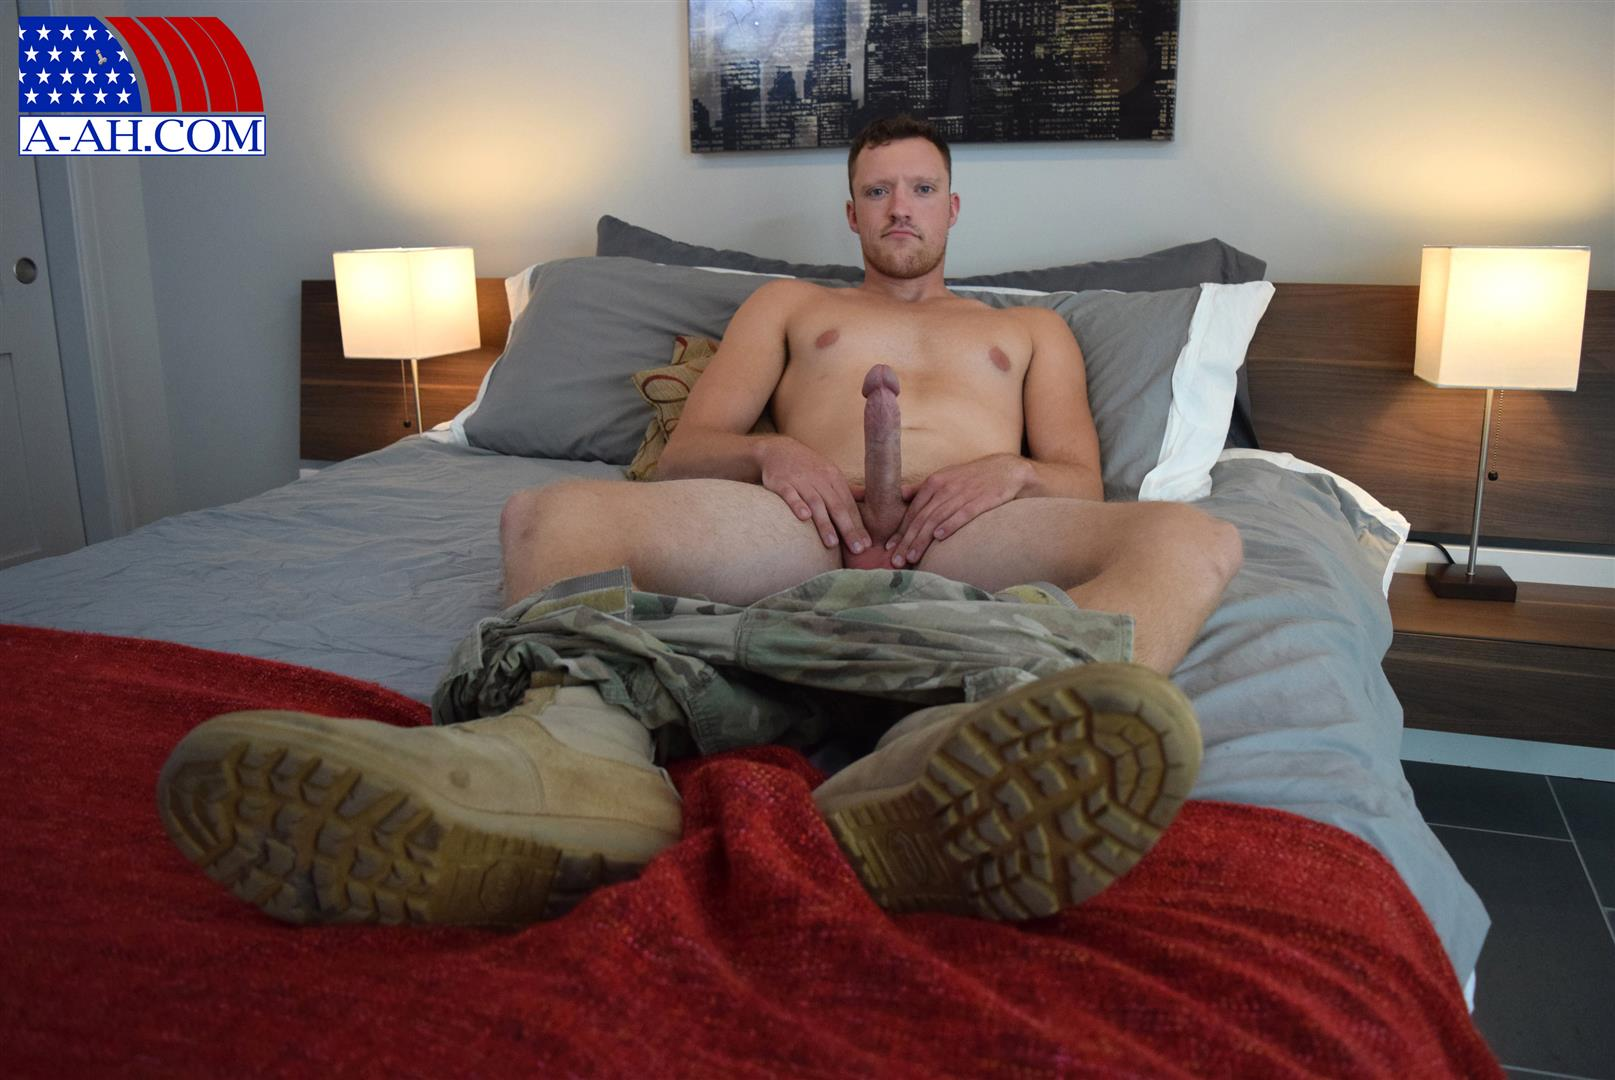 All American Heroes Randy Army Sergeant Naked With A Big Cock Amateur Gay Porn 04 Army Sergeant Comes Out Of The Closet in Afghanistan